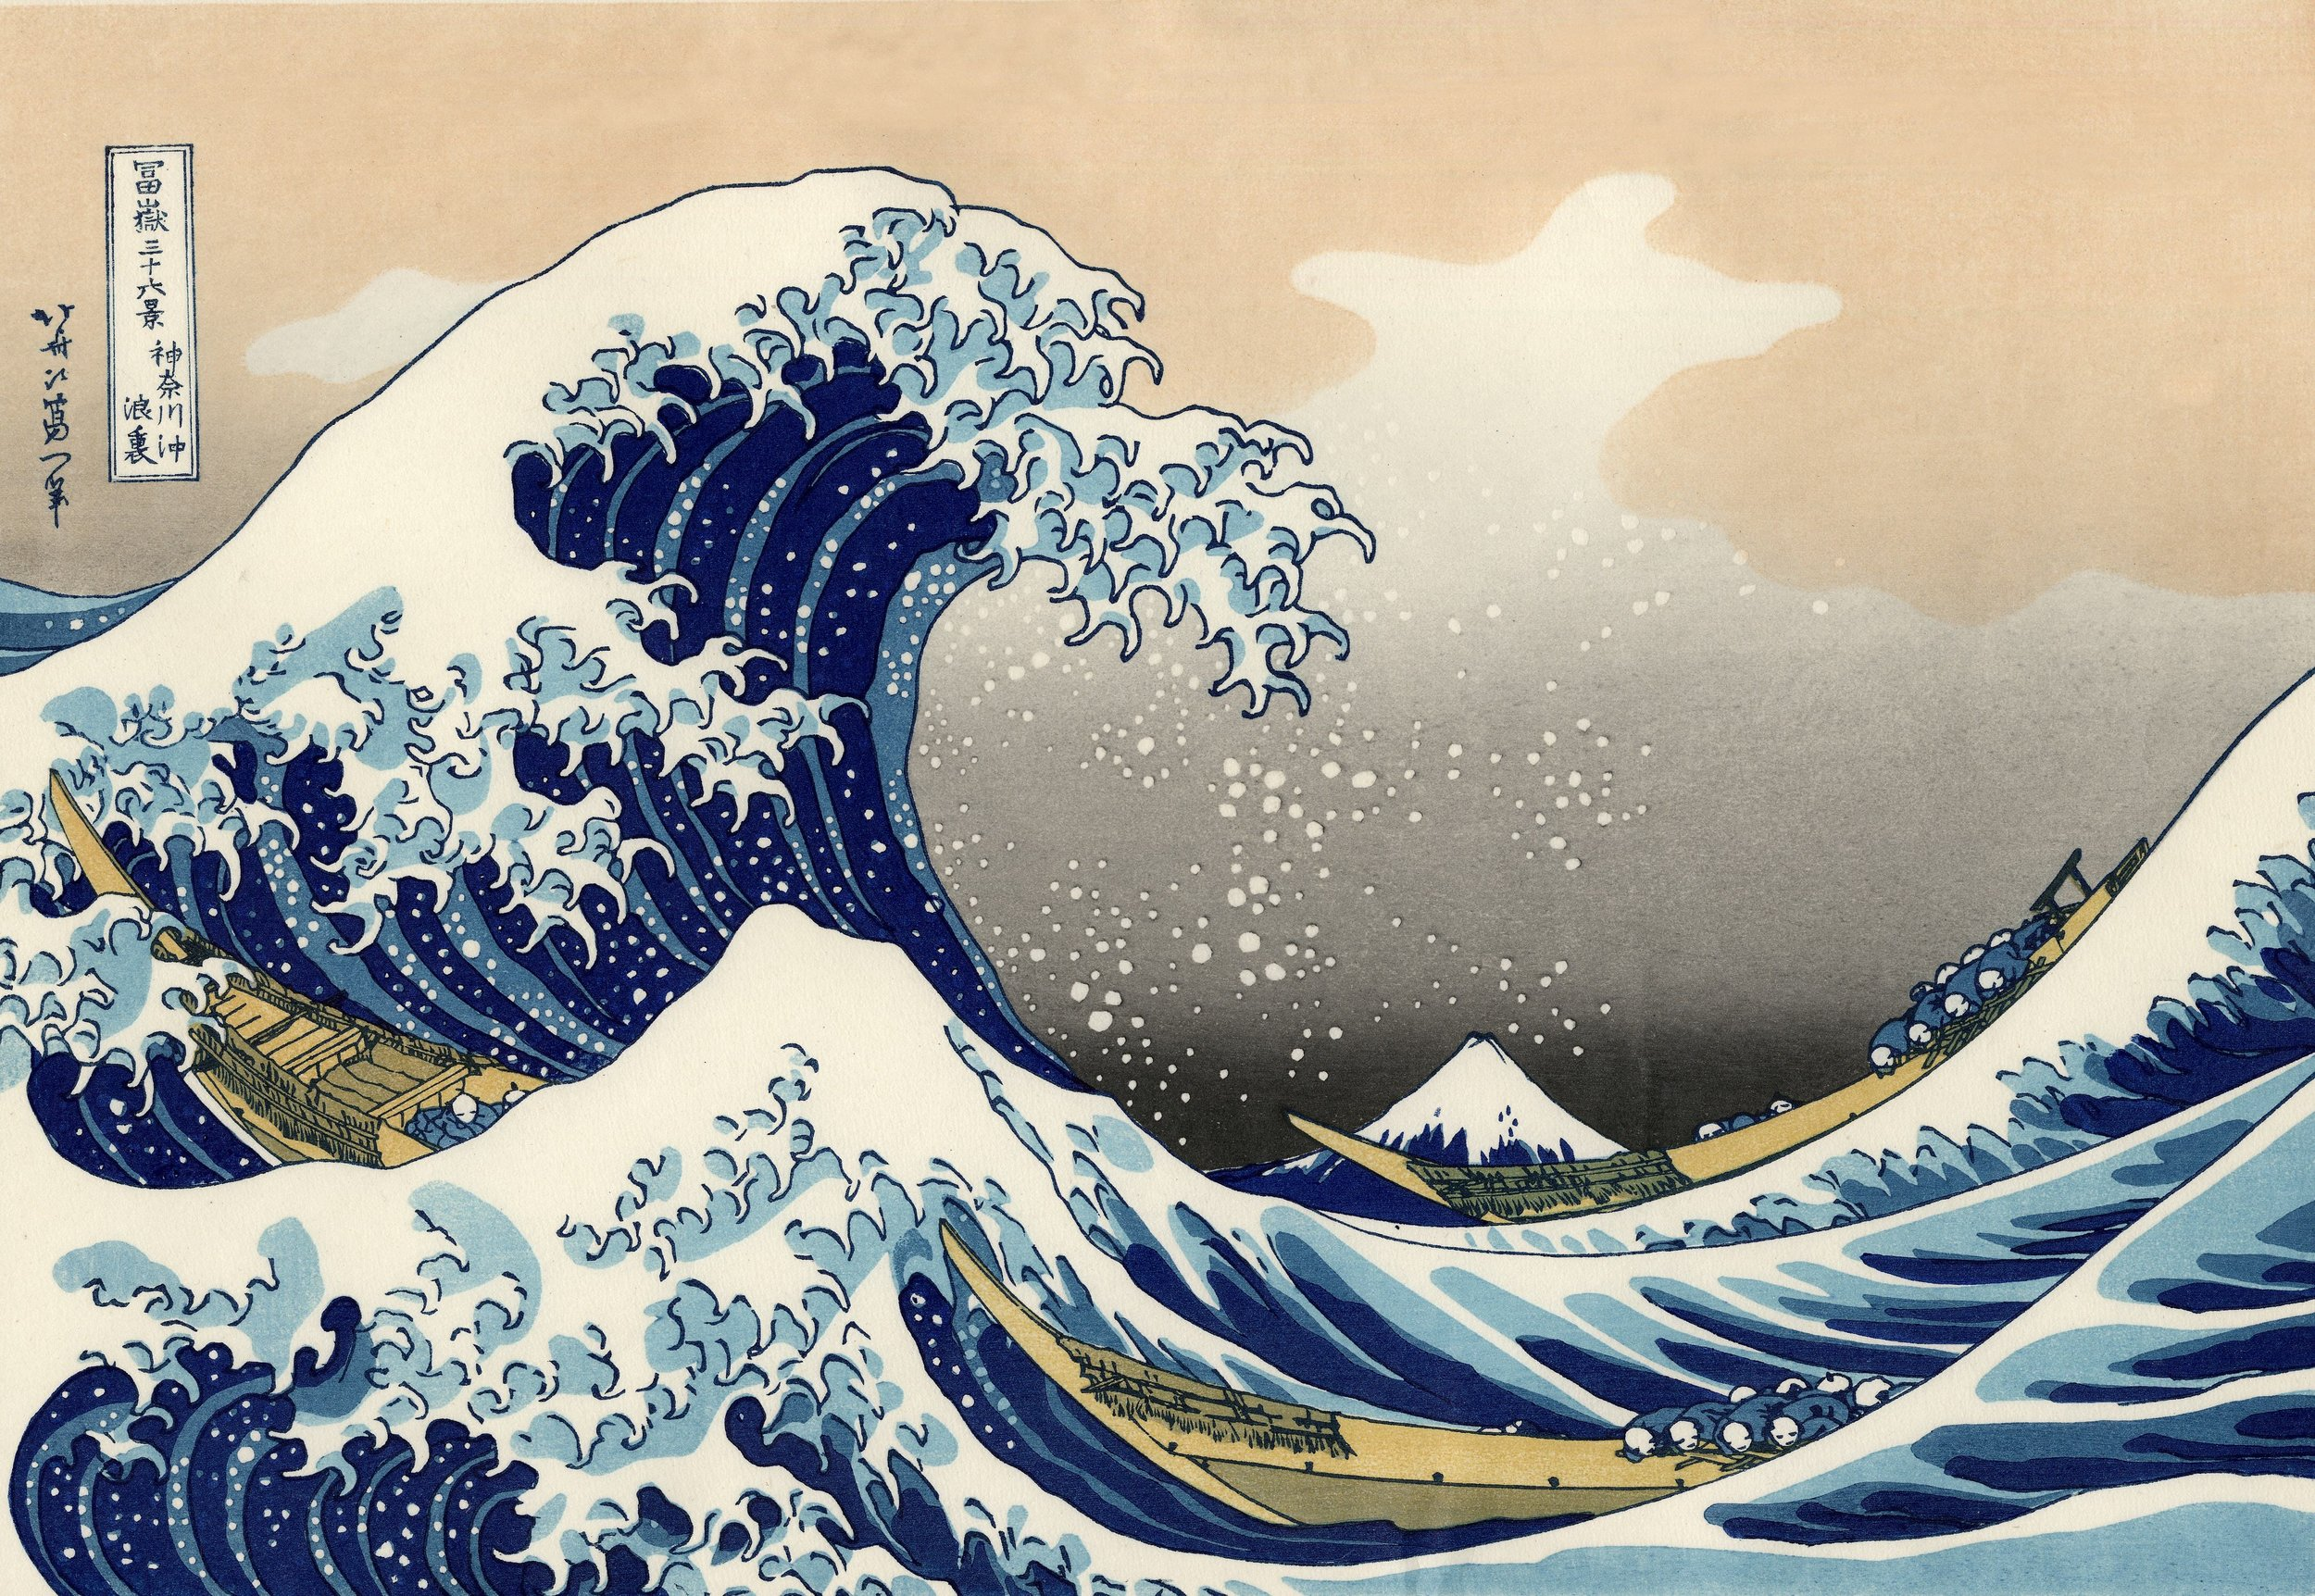 Hokusai 's   The Great Wave off Kanagawa  , 1831  https://en.wikipedia.org/wiki/Ukiyo-e#/media/File:The_Great_Wave_off_Kanagawa.jpg